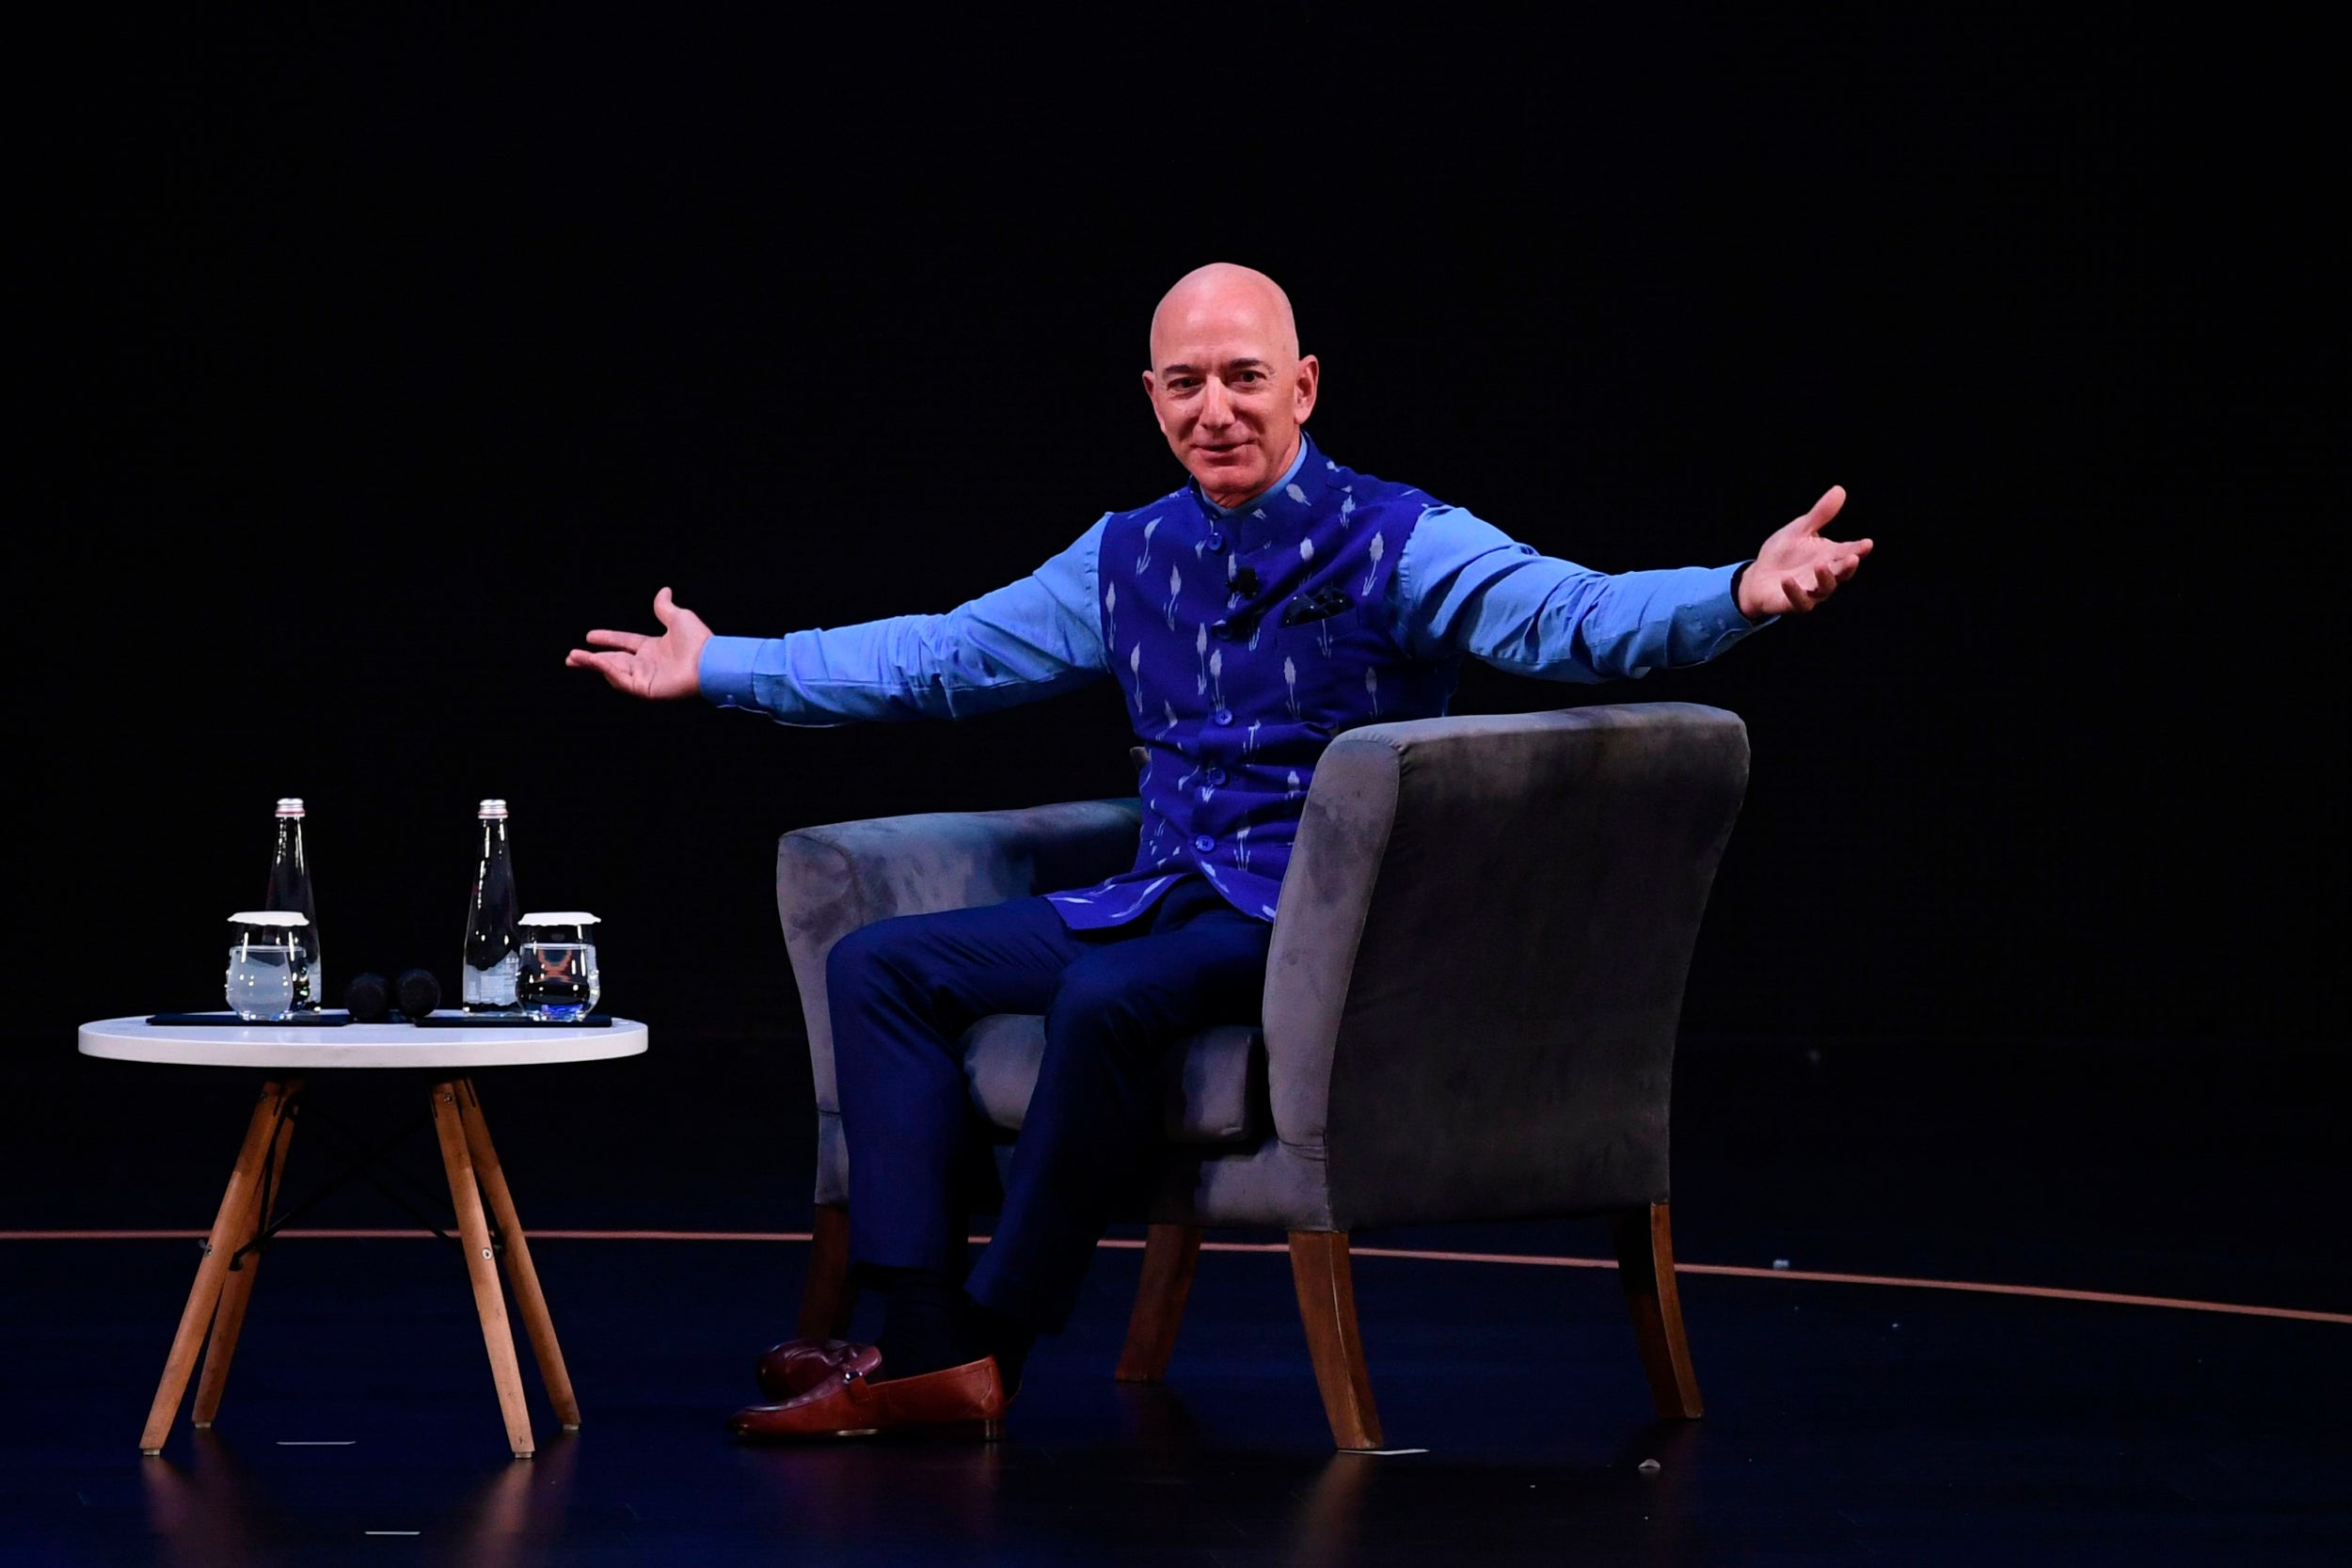 Jeff Bezos says Amazon is happy to lose customers who object to Black Lives Matter stance after sharing abusive email thumbnail